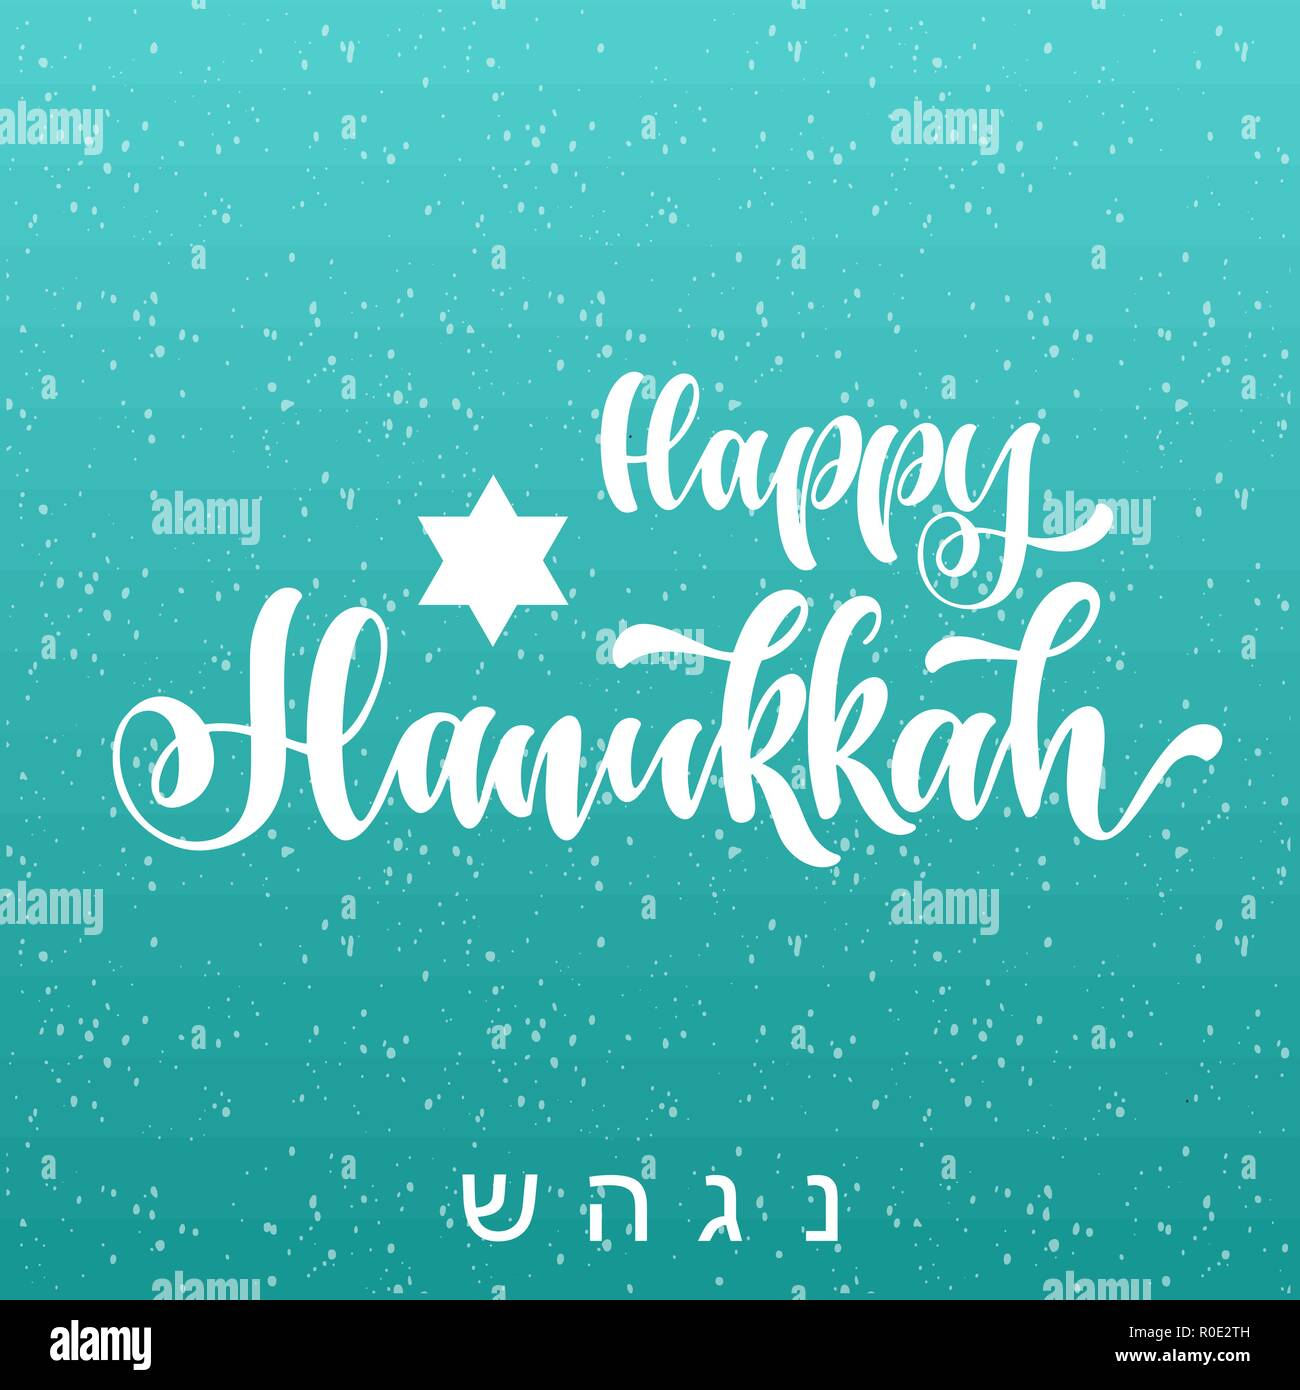 Happy hanukkah hand drawn lettering, dreidels and jewish stars.  Elements for invitations, posters, greeting cards. T-shirt design. Seasons Greetings. Stock Vector